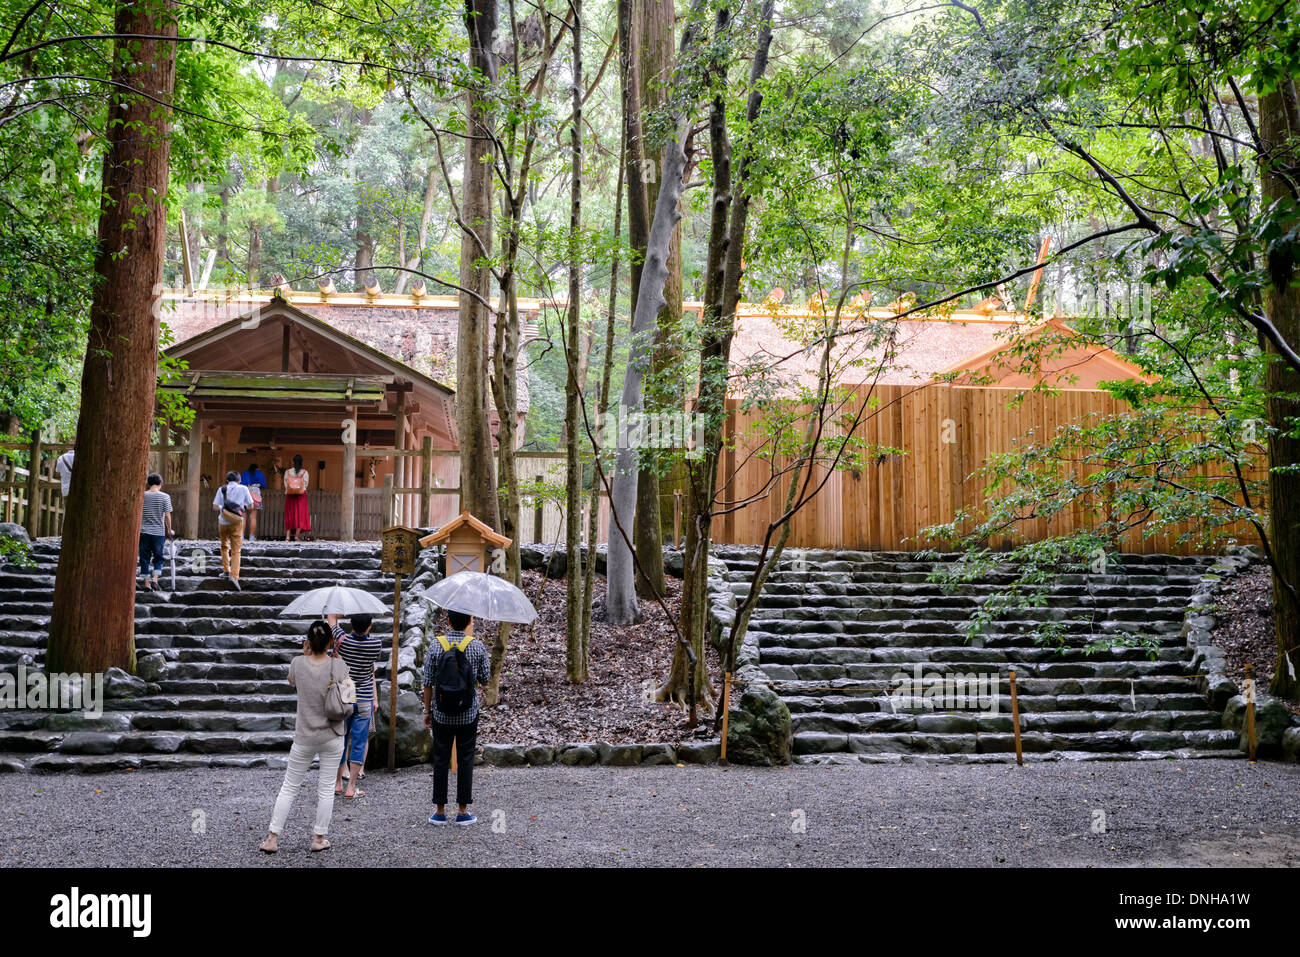 Ise Jingu, or Ise Grand Shrine, which is re-built every 20 years. This shows both old and new versions of the same building. - Stock Image